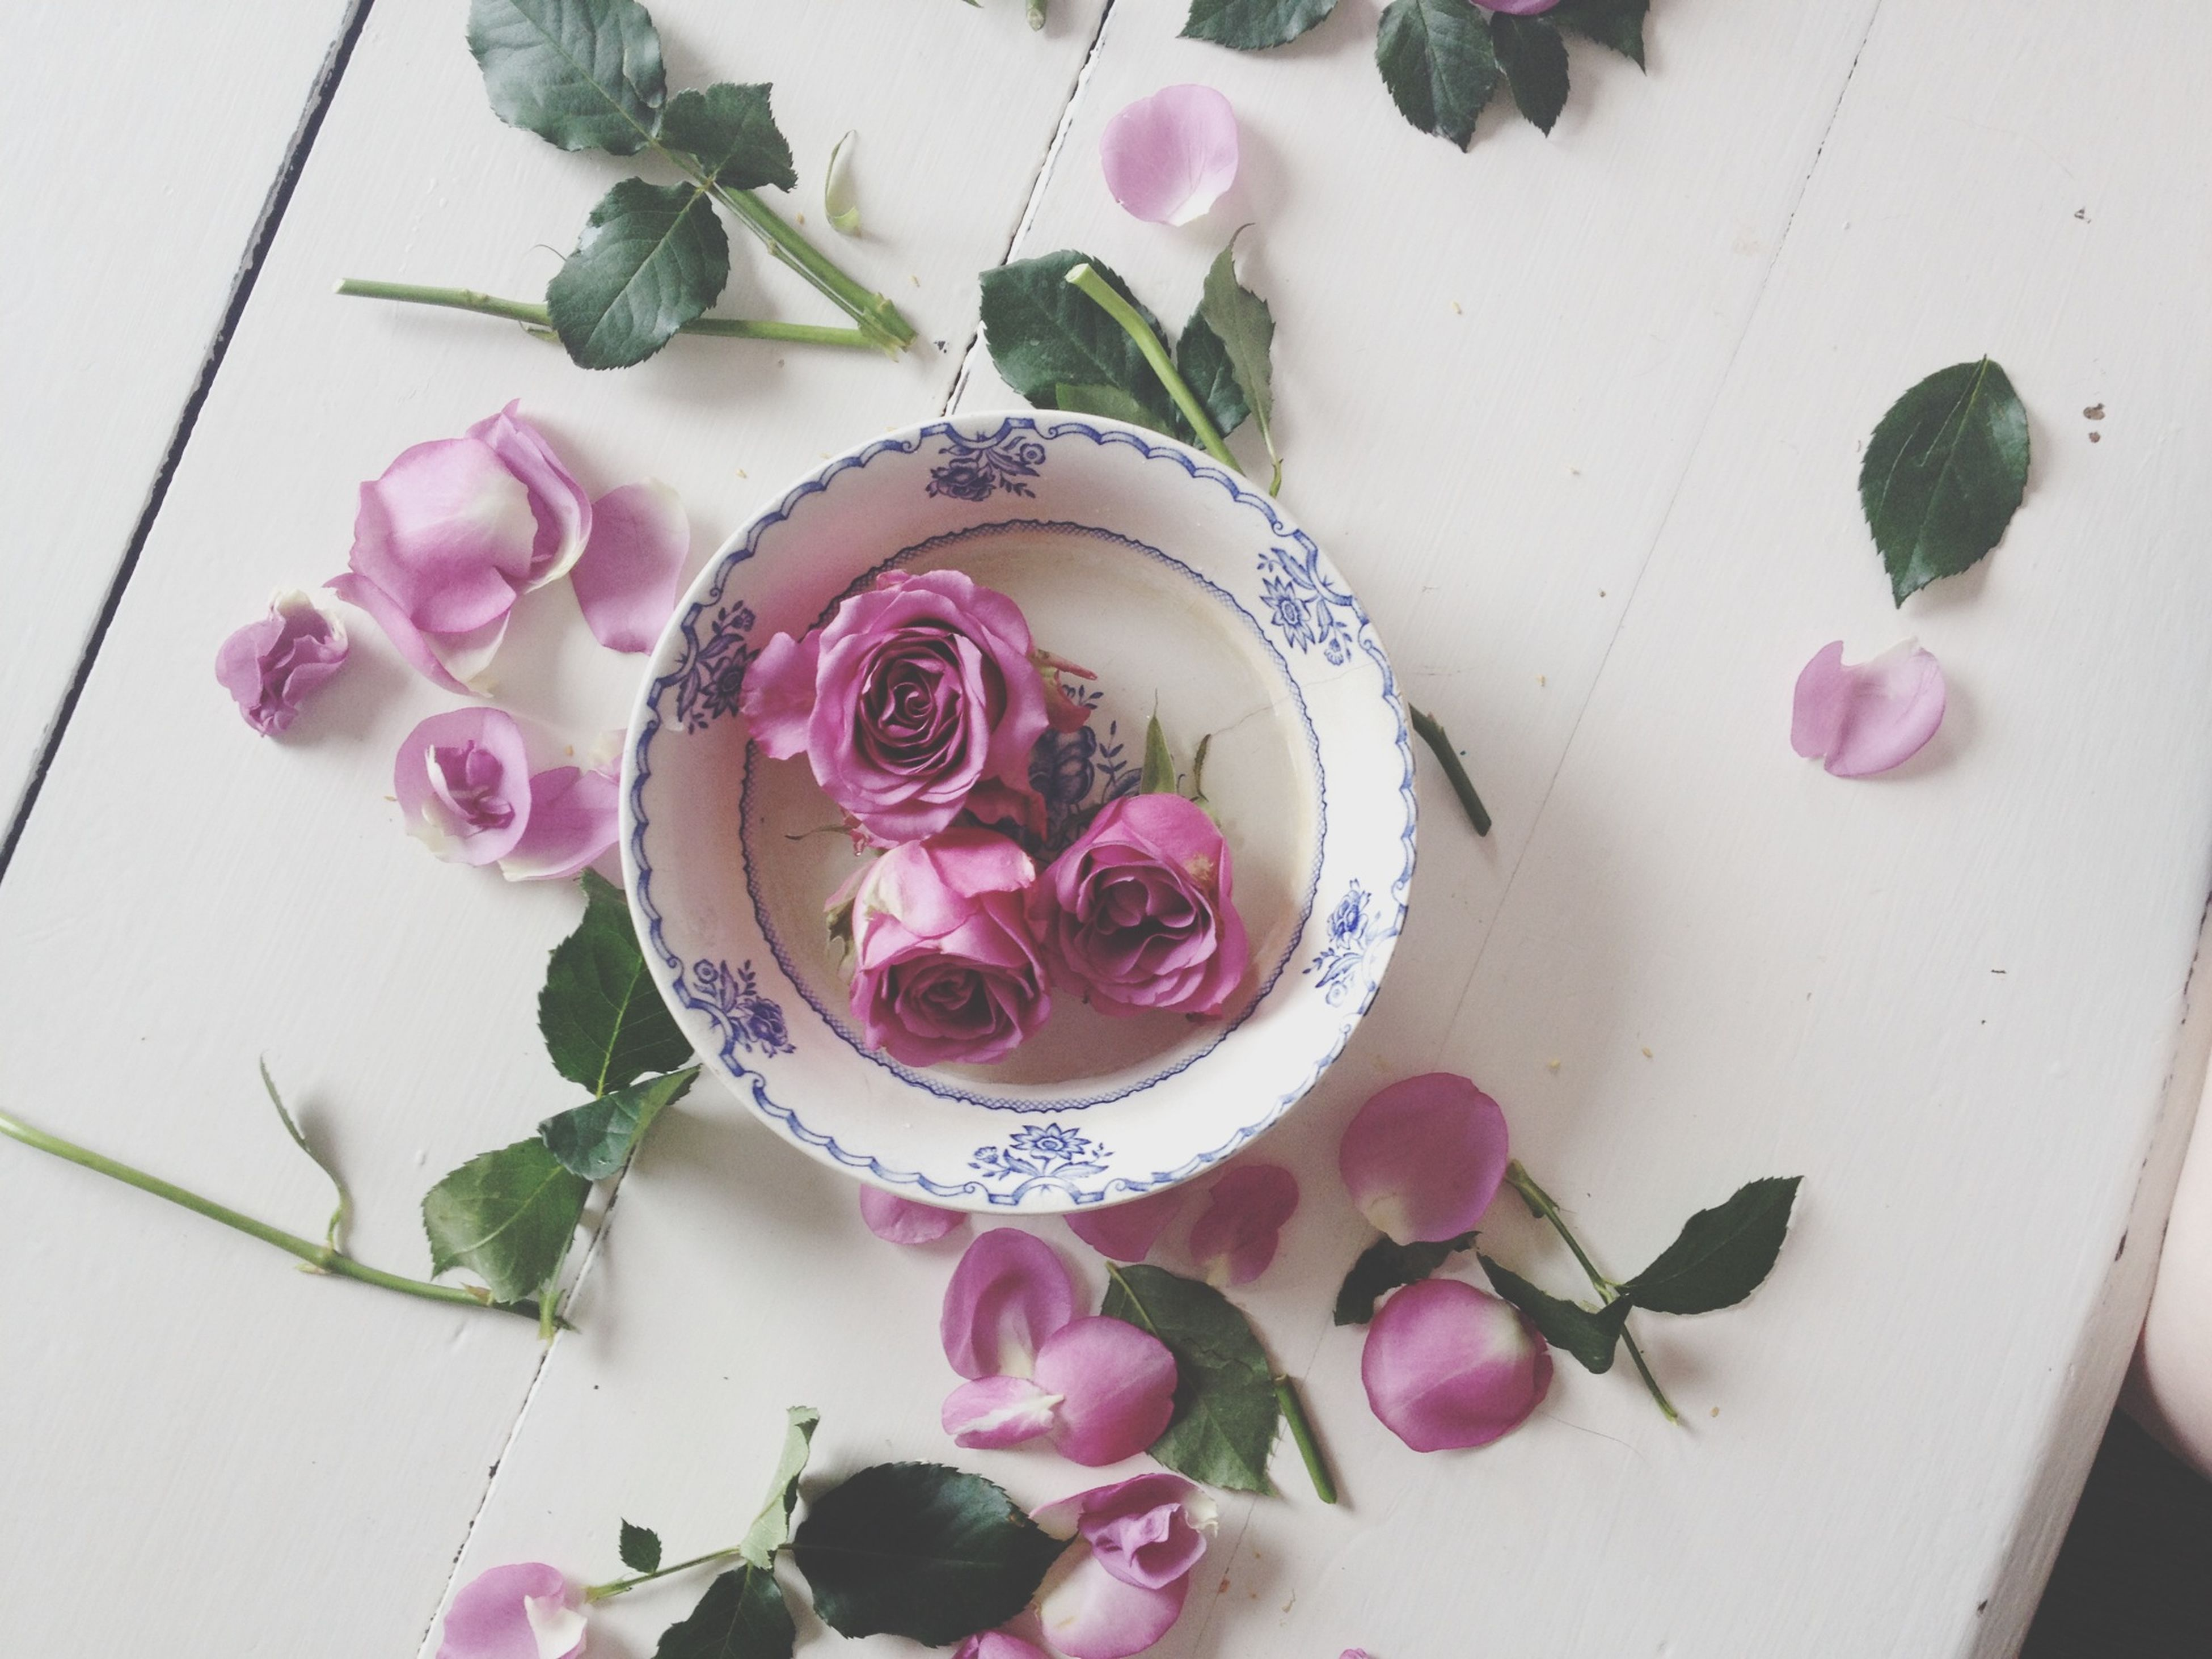 flower, indoors, freshness, pink color, vase, table, decoration, petal, high angle view, fragility, still life, rose - flower, bouquet, close-up, plant, leaf, potted plant, flower head, no people, wall - building feature